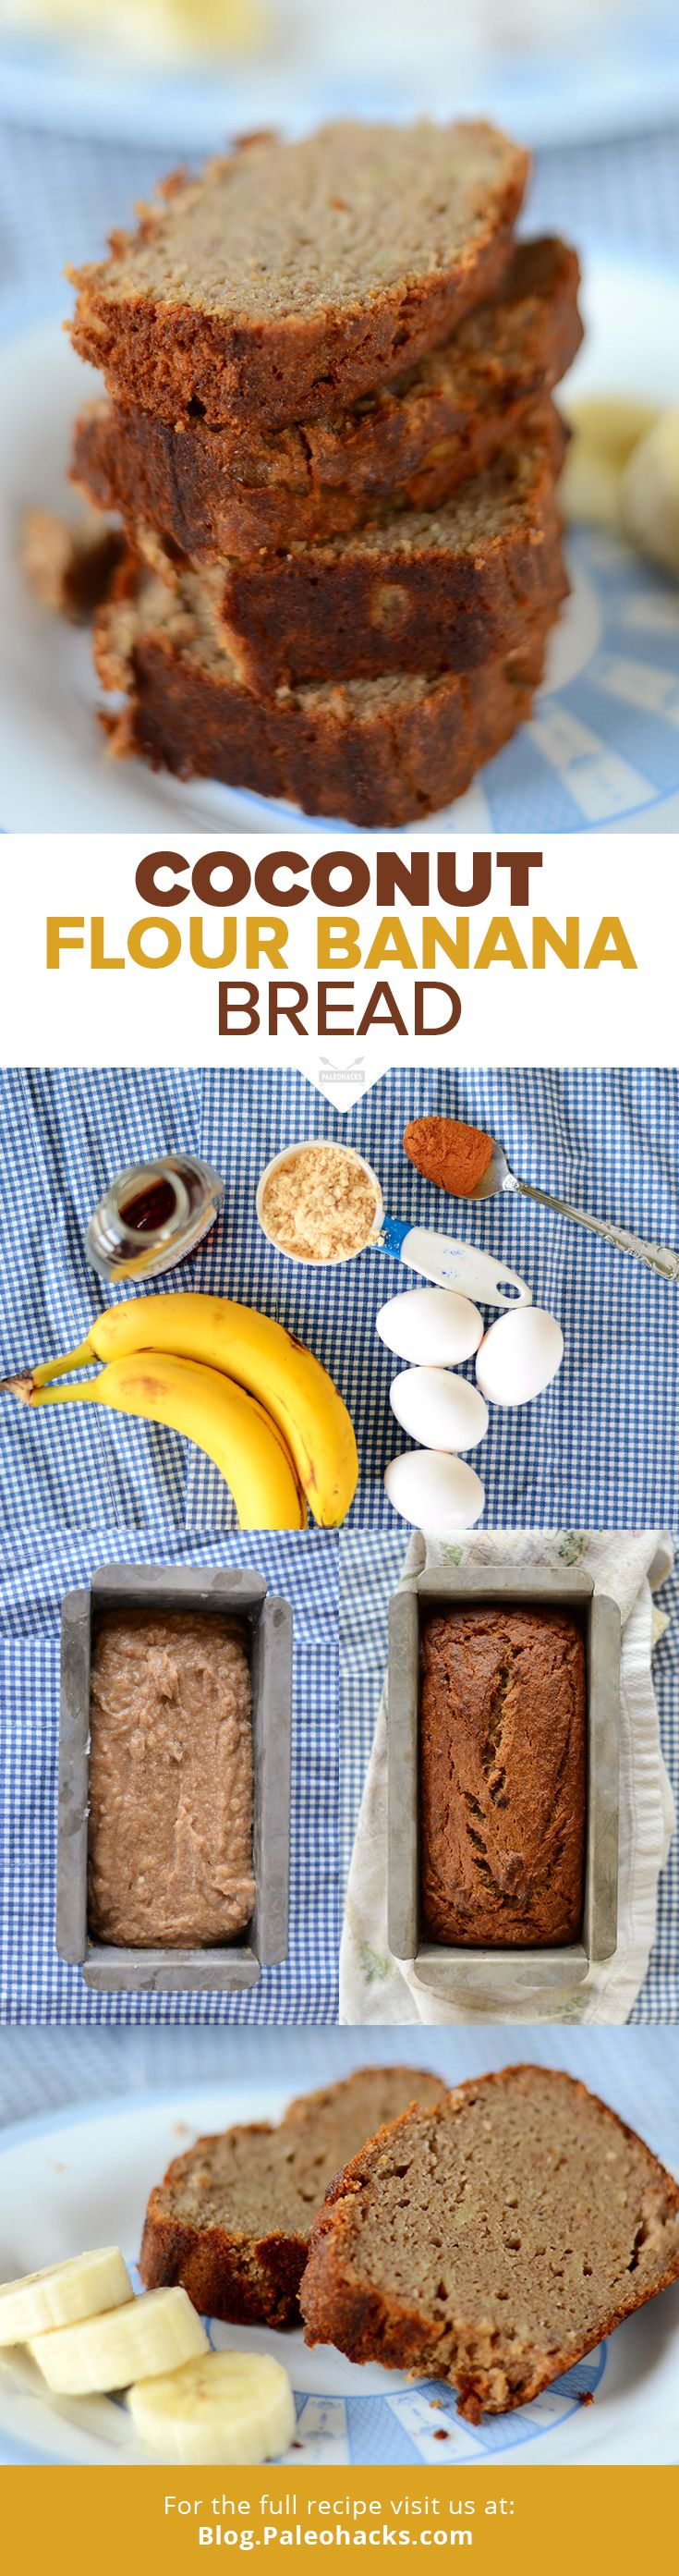 Want a super easy treat that uses up those ripening bananas on your counter? Try this recipe for Paleo Banana Bread. It bakes up soft, moist, fluffy, and sweet! For the full recipe visit us here: http://paleo.co/CFNanaBread #paleohacks #paleo